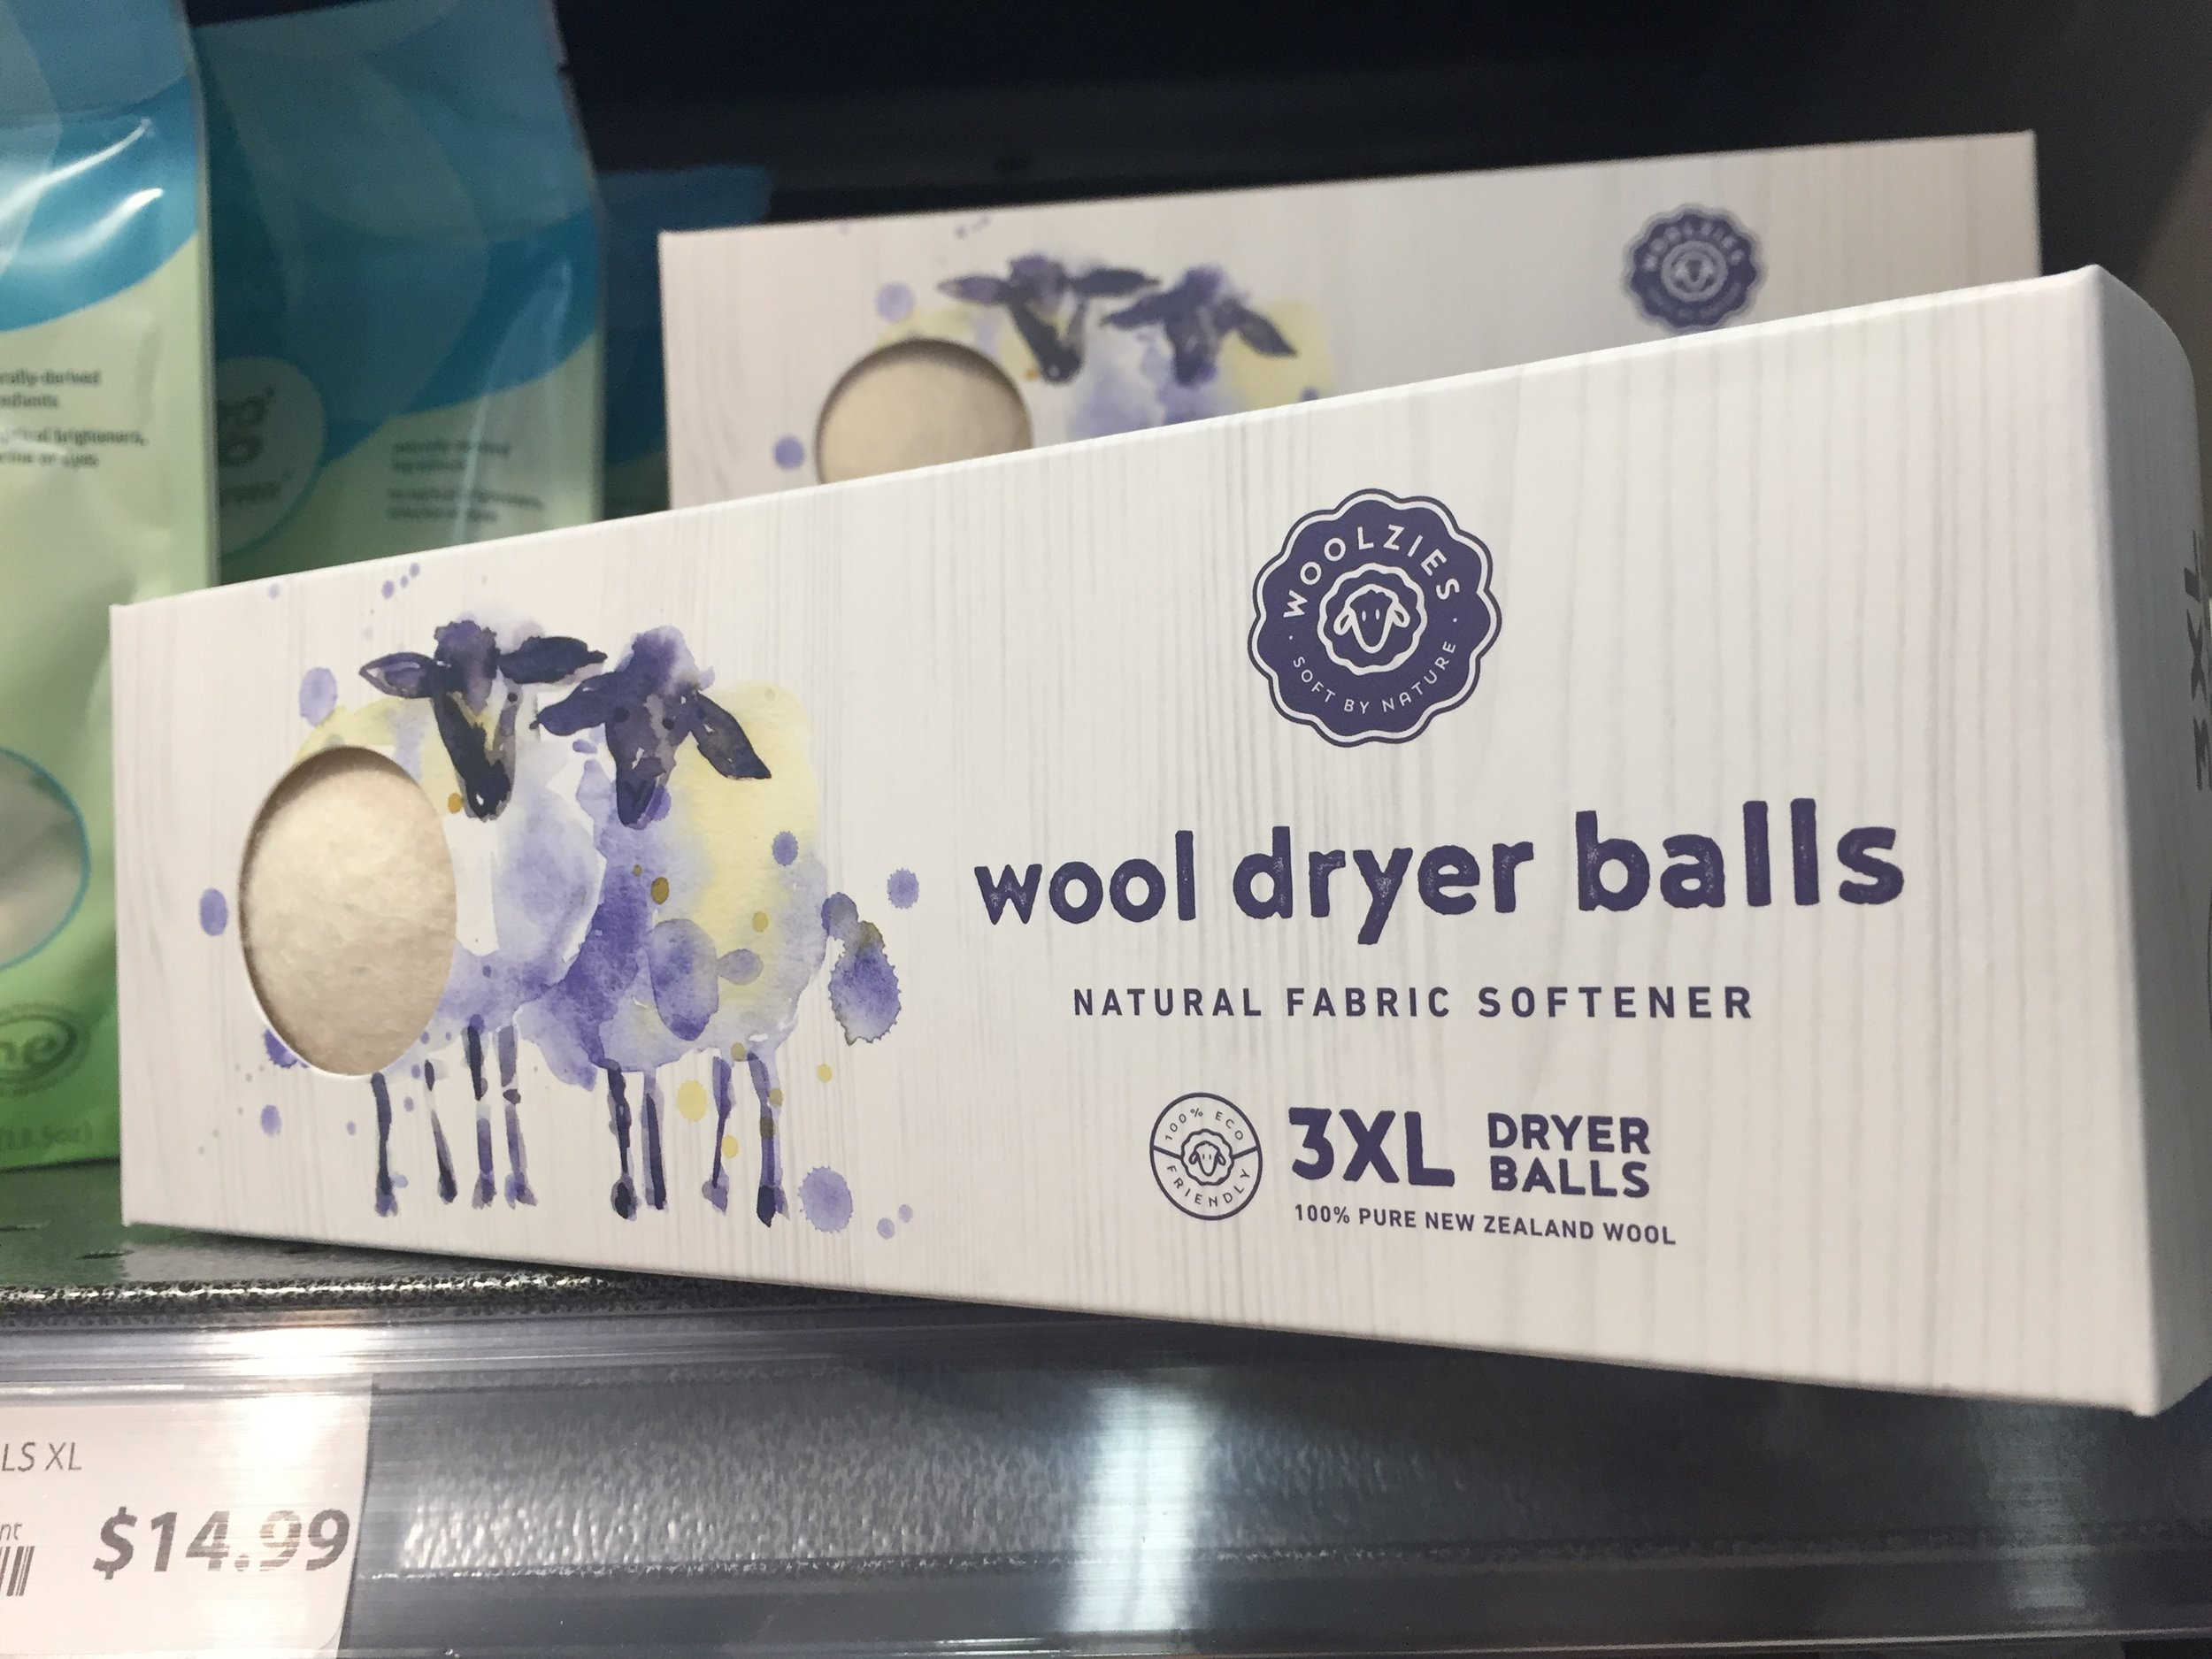 Found some wool dryer balls, also from New Zealand. Love the branding; I bought these too - love to support the New Zealand companies.